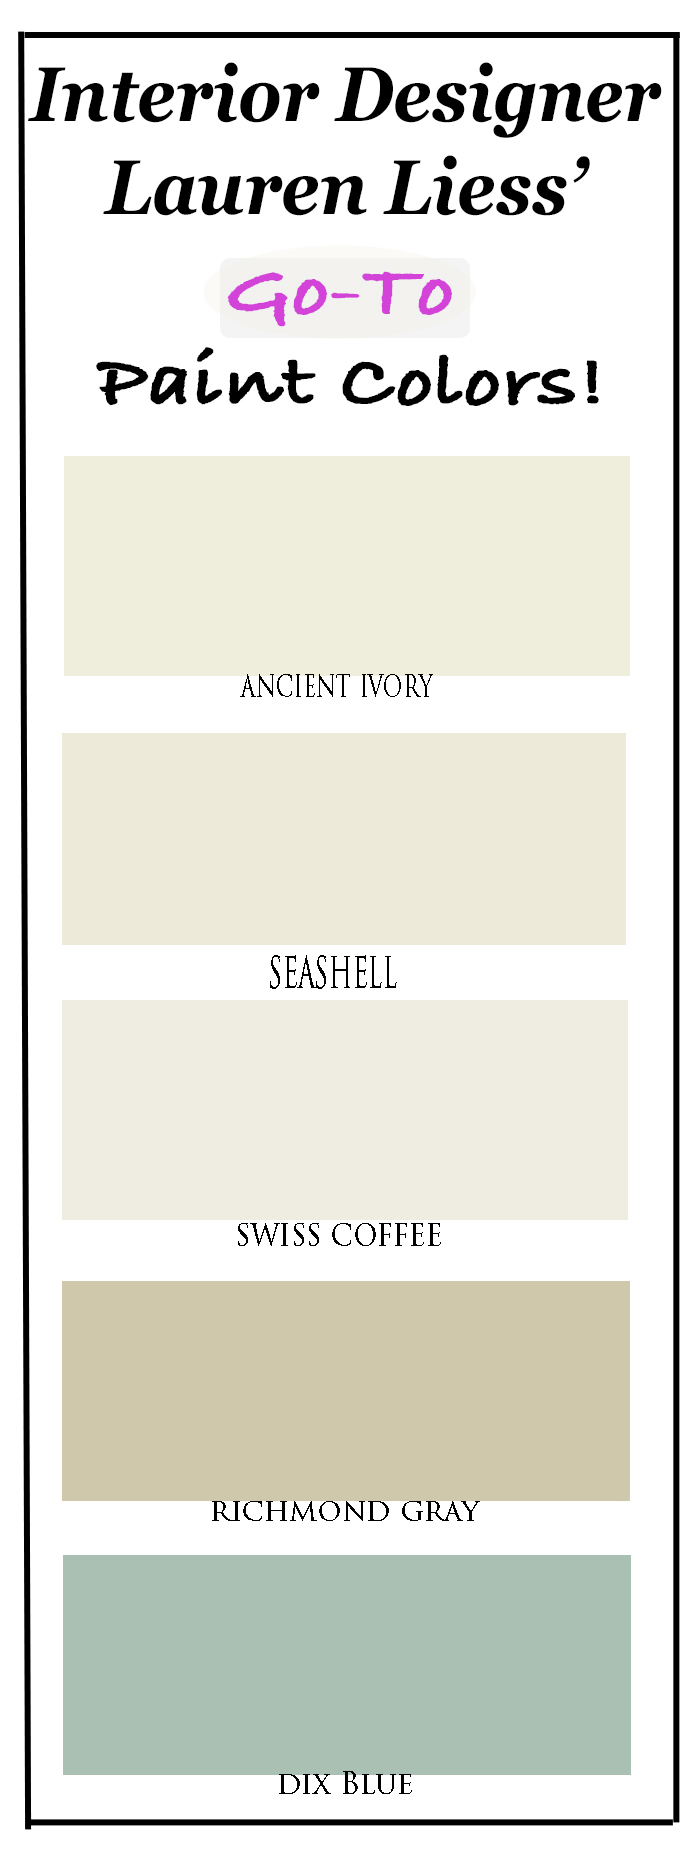 Lauren Liess' Favorite Paint Colors